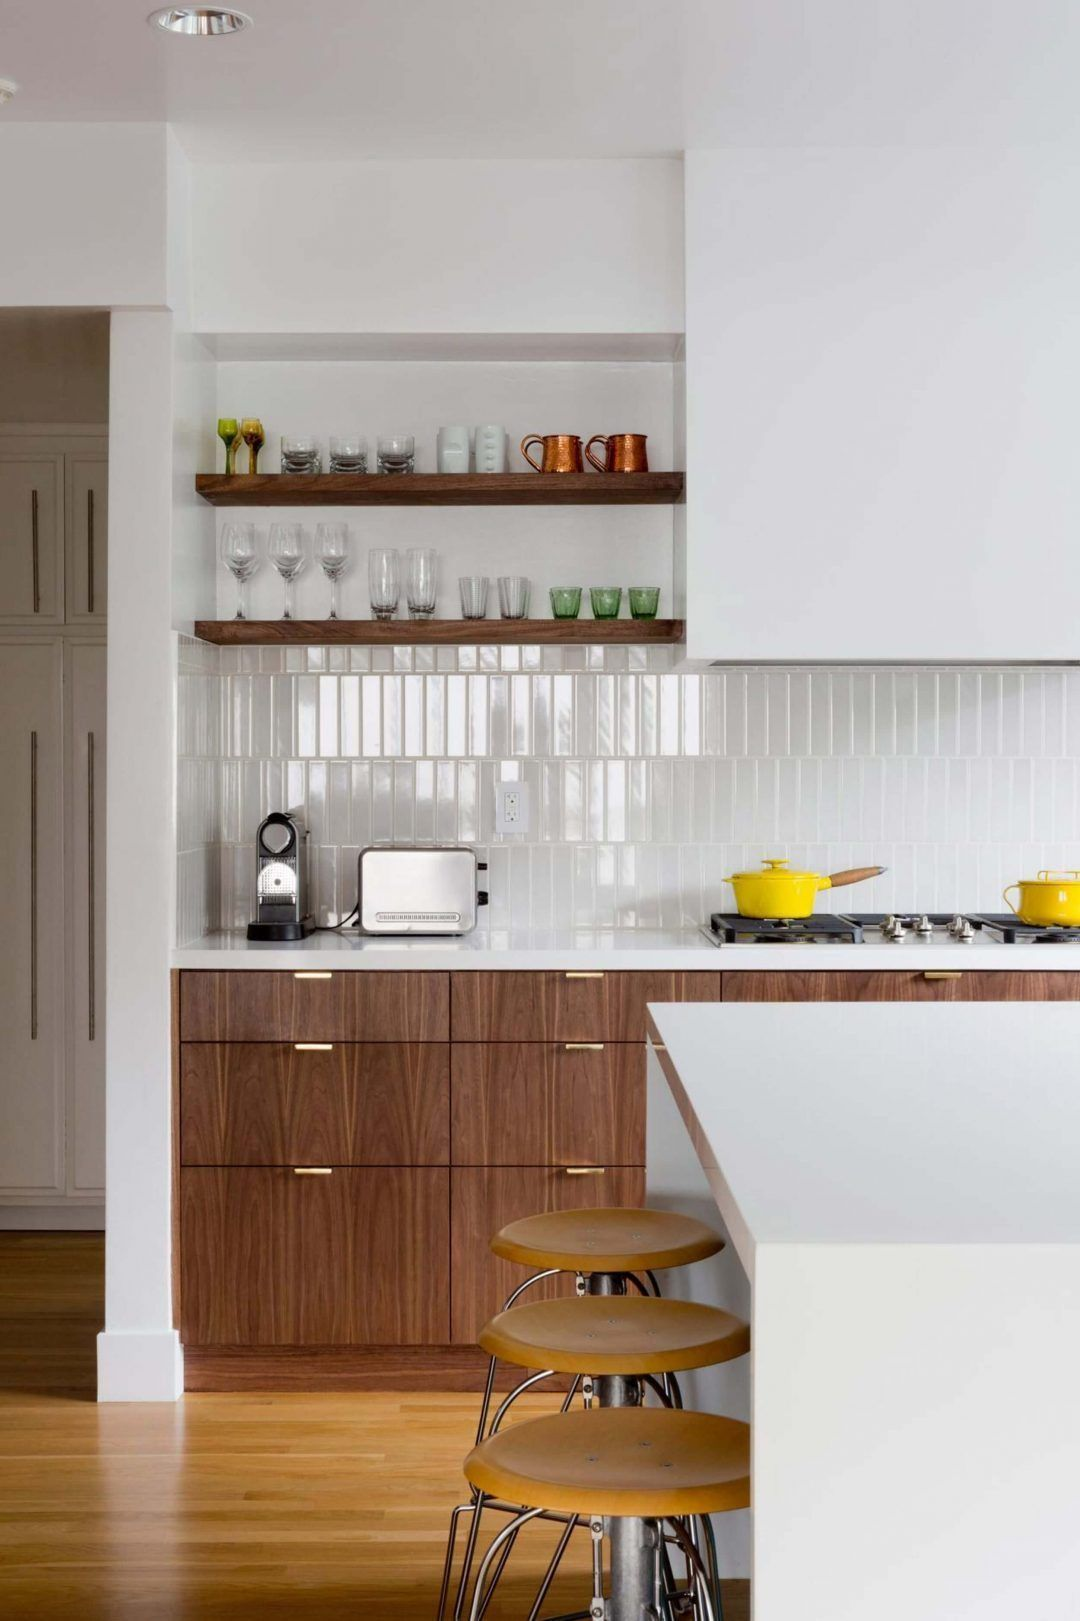 25 Mid Century Modern Kitchen Ideas To Beautify Your Cooking Area - 8E05C328Cb775843C12D3A4A1Cd8Dd14